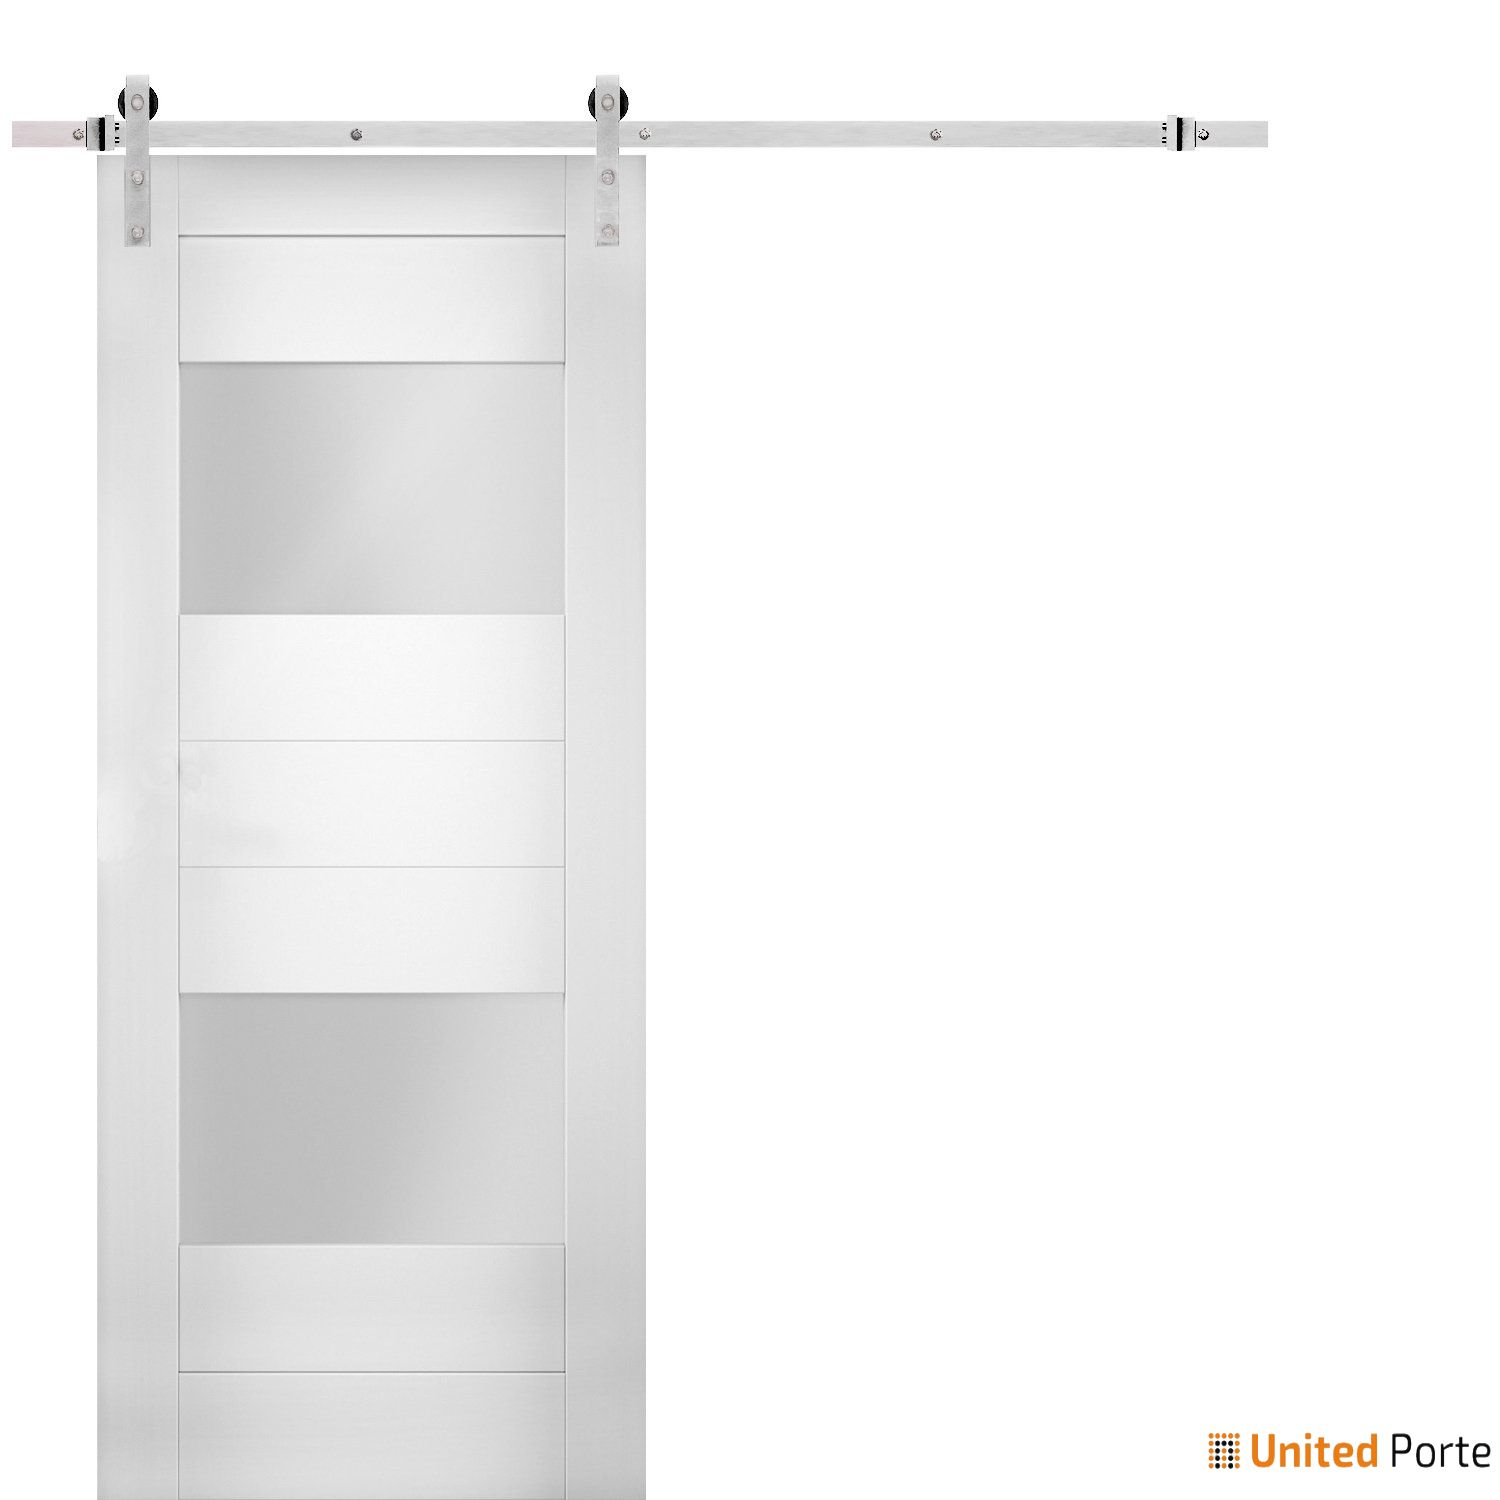 Sete 6222 White Silk Modern Barn Door Opaque Glass 2 Lites with Stainless Hardware | Solid Panel Interior Barn Doors